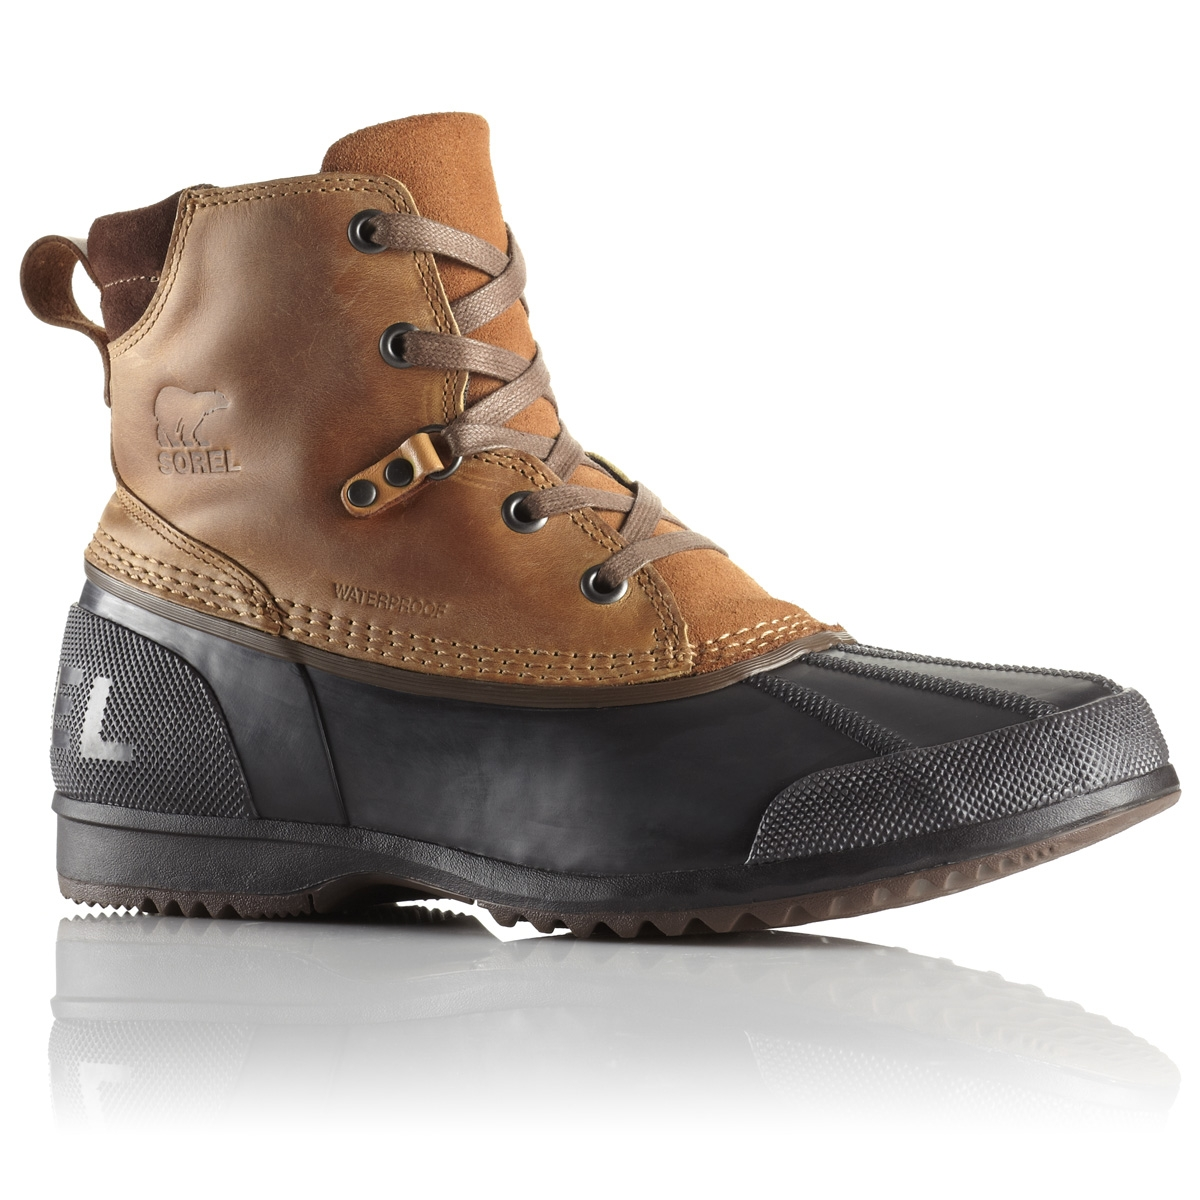 ankeny men Men's sorel ankeny boot with free shipping & exchanges stay dry in the men's sorel ankeny boot this boot features waterproof.